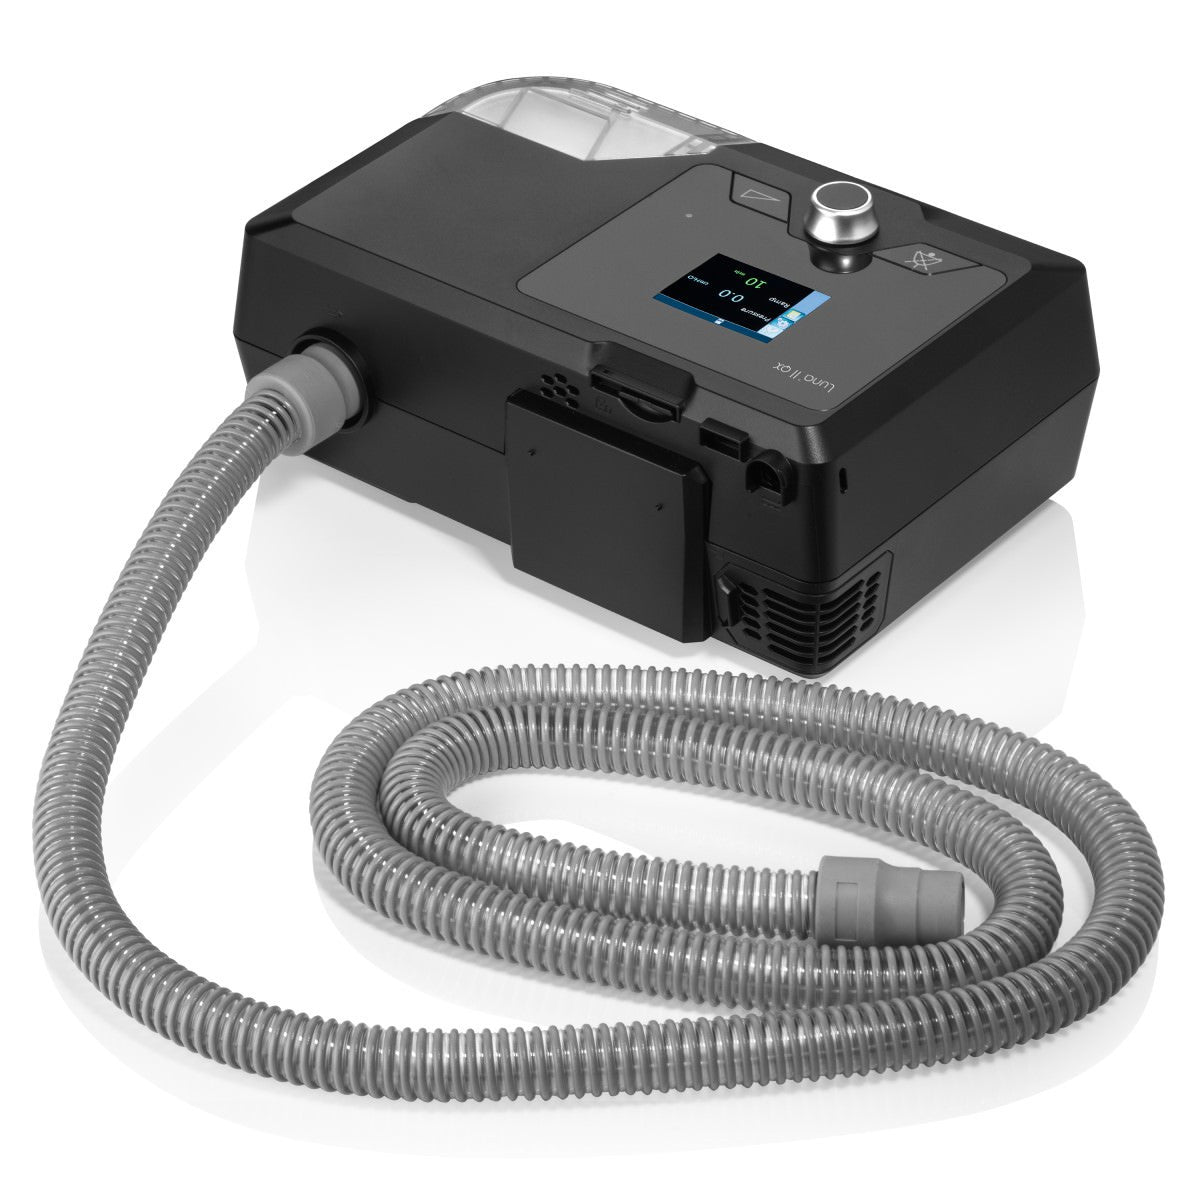 Back view of Luna II QX CPAP With Integrated Heated Humidifier and swivel tube connector.